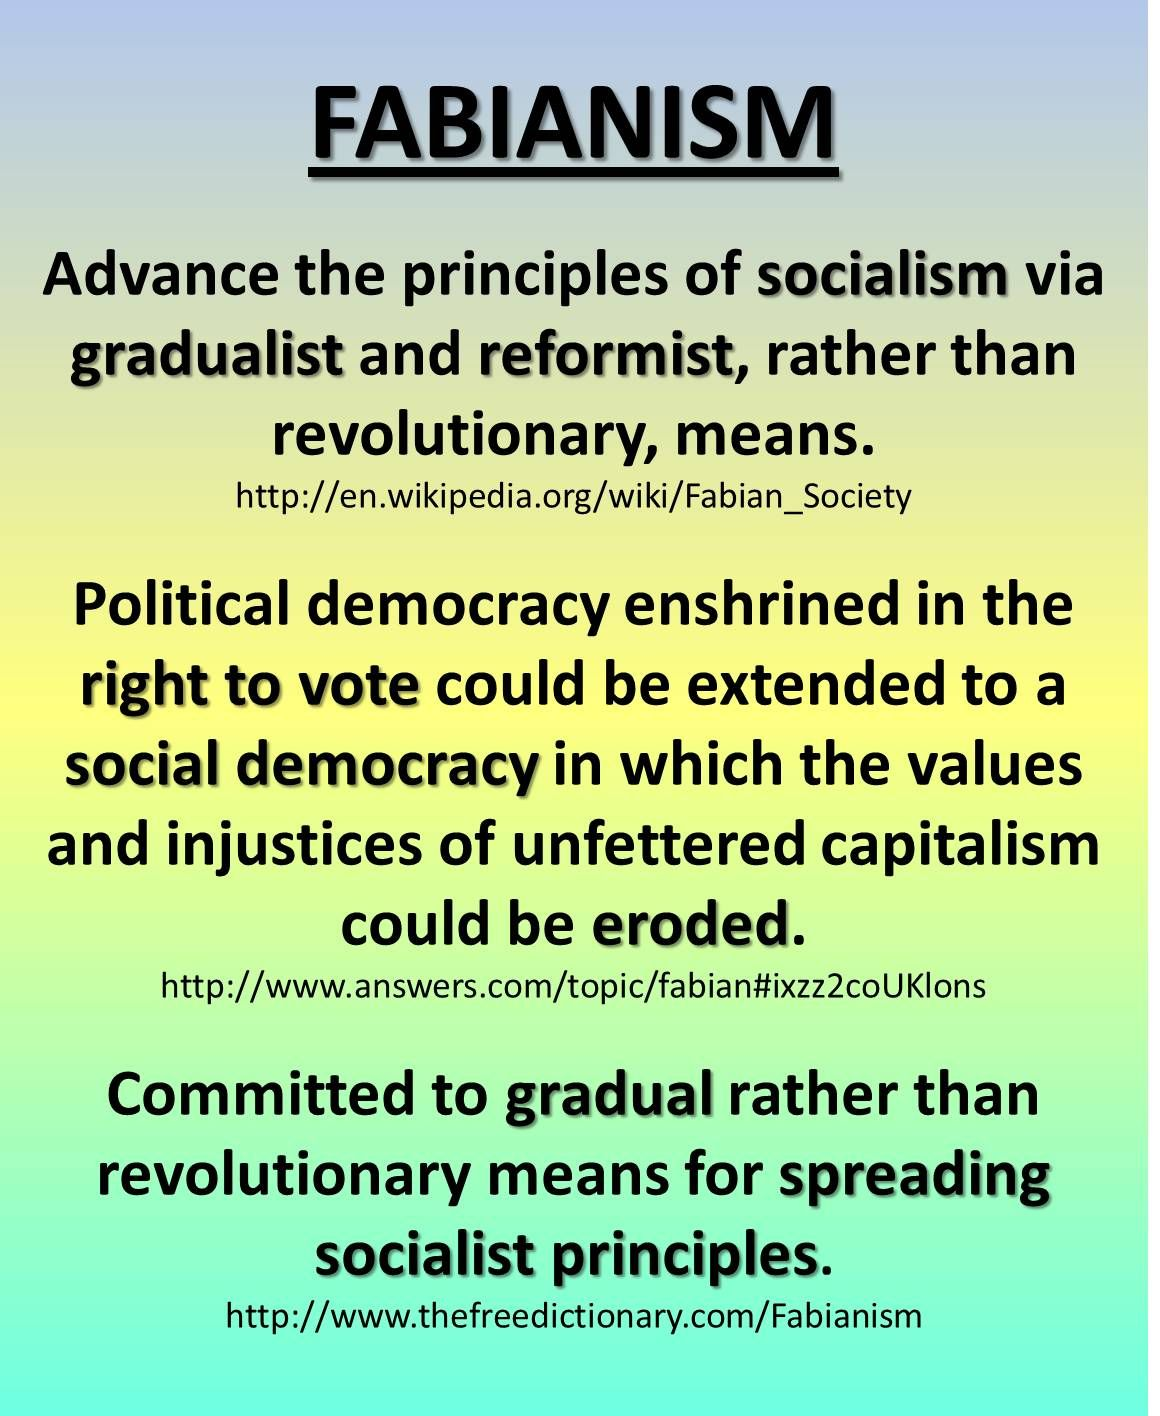 FABIANISM - Socialism via gradual reformation vs. revolutionary - shrouded  in the right to vote - eroding capitalism - creating the welfare state so  the